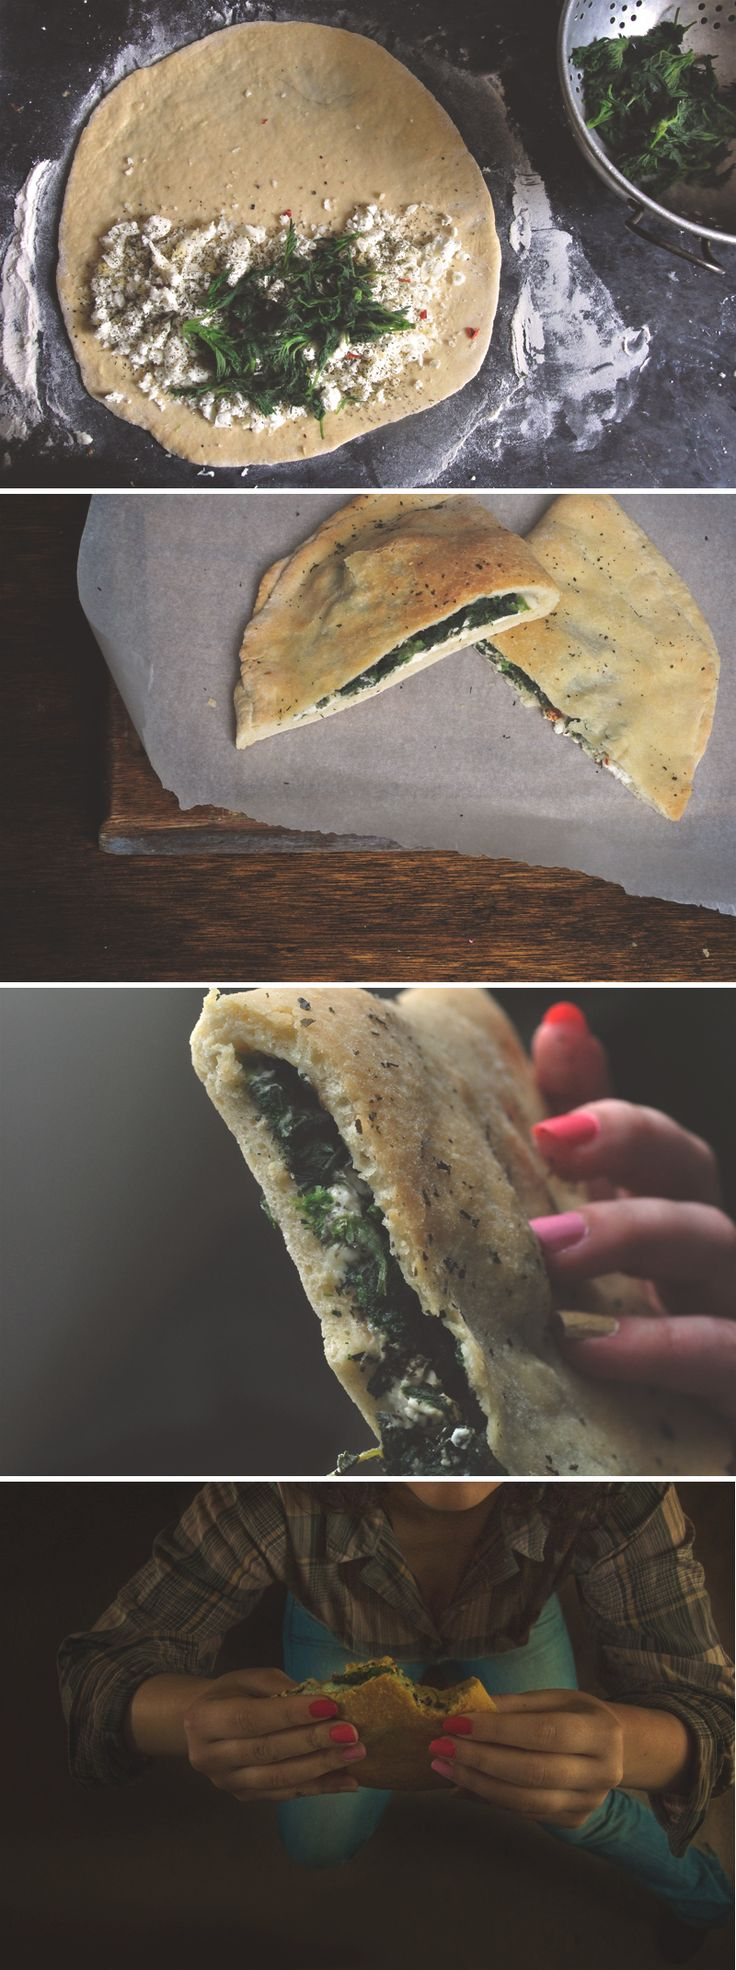 """Calzone aux """"mauvaises herbes"""" (orties, menthe)"""